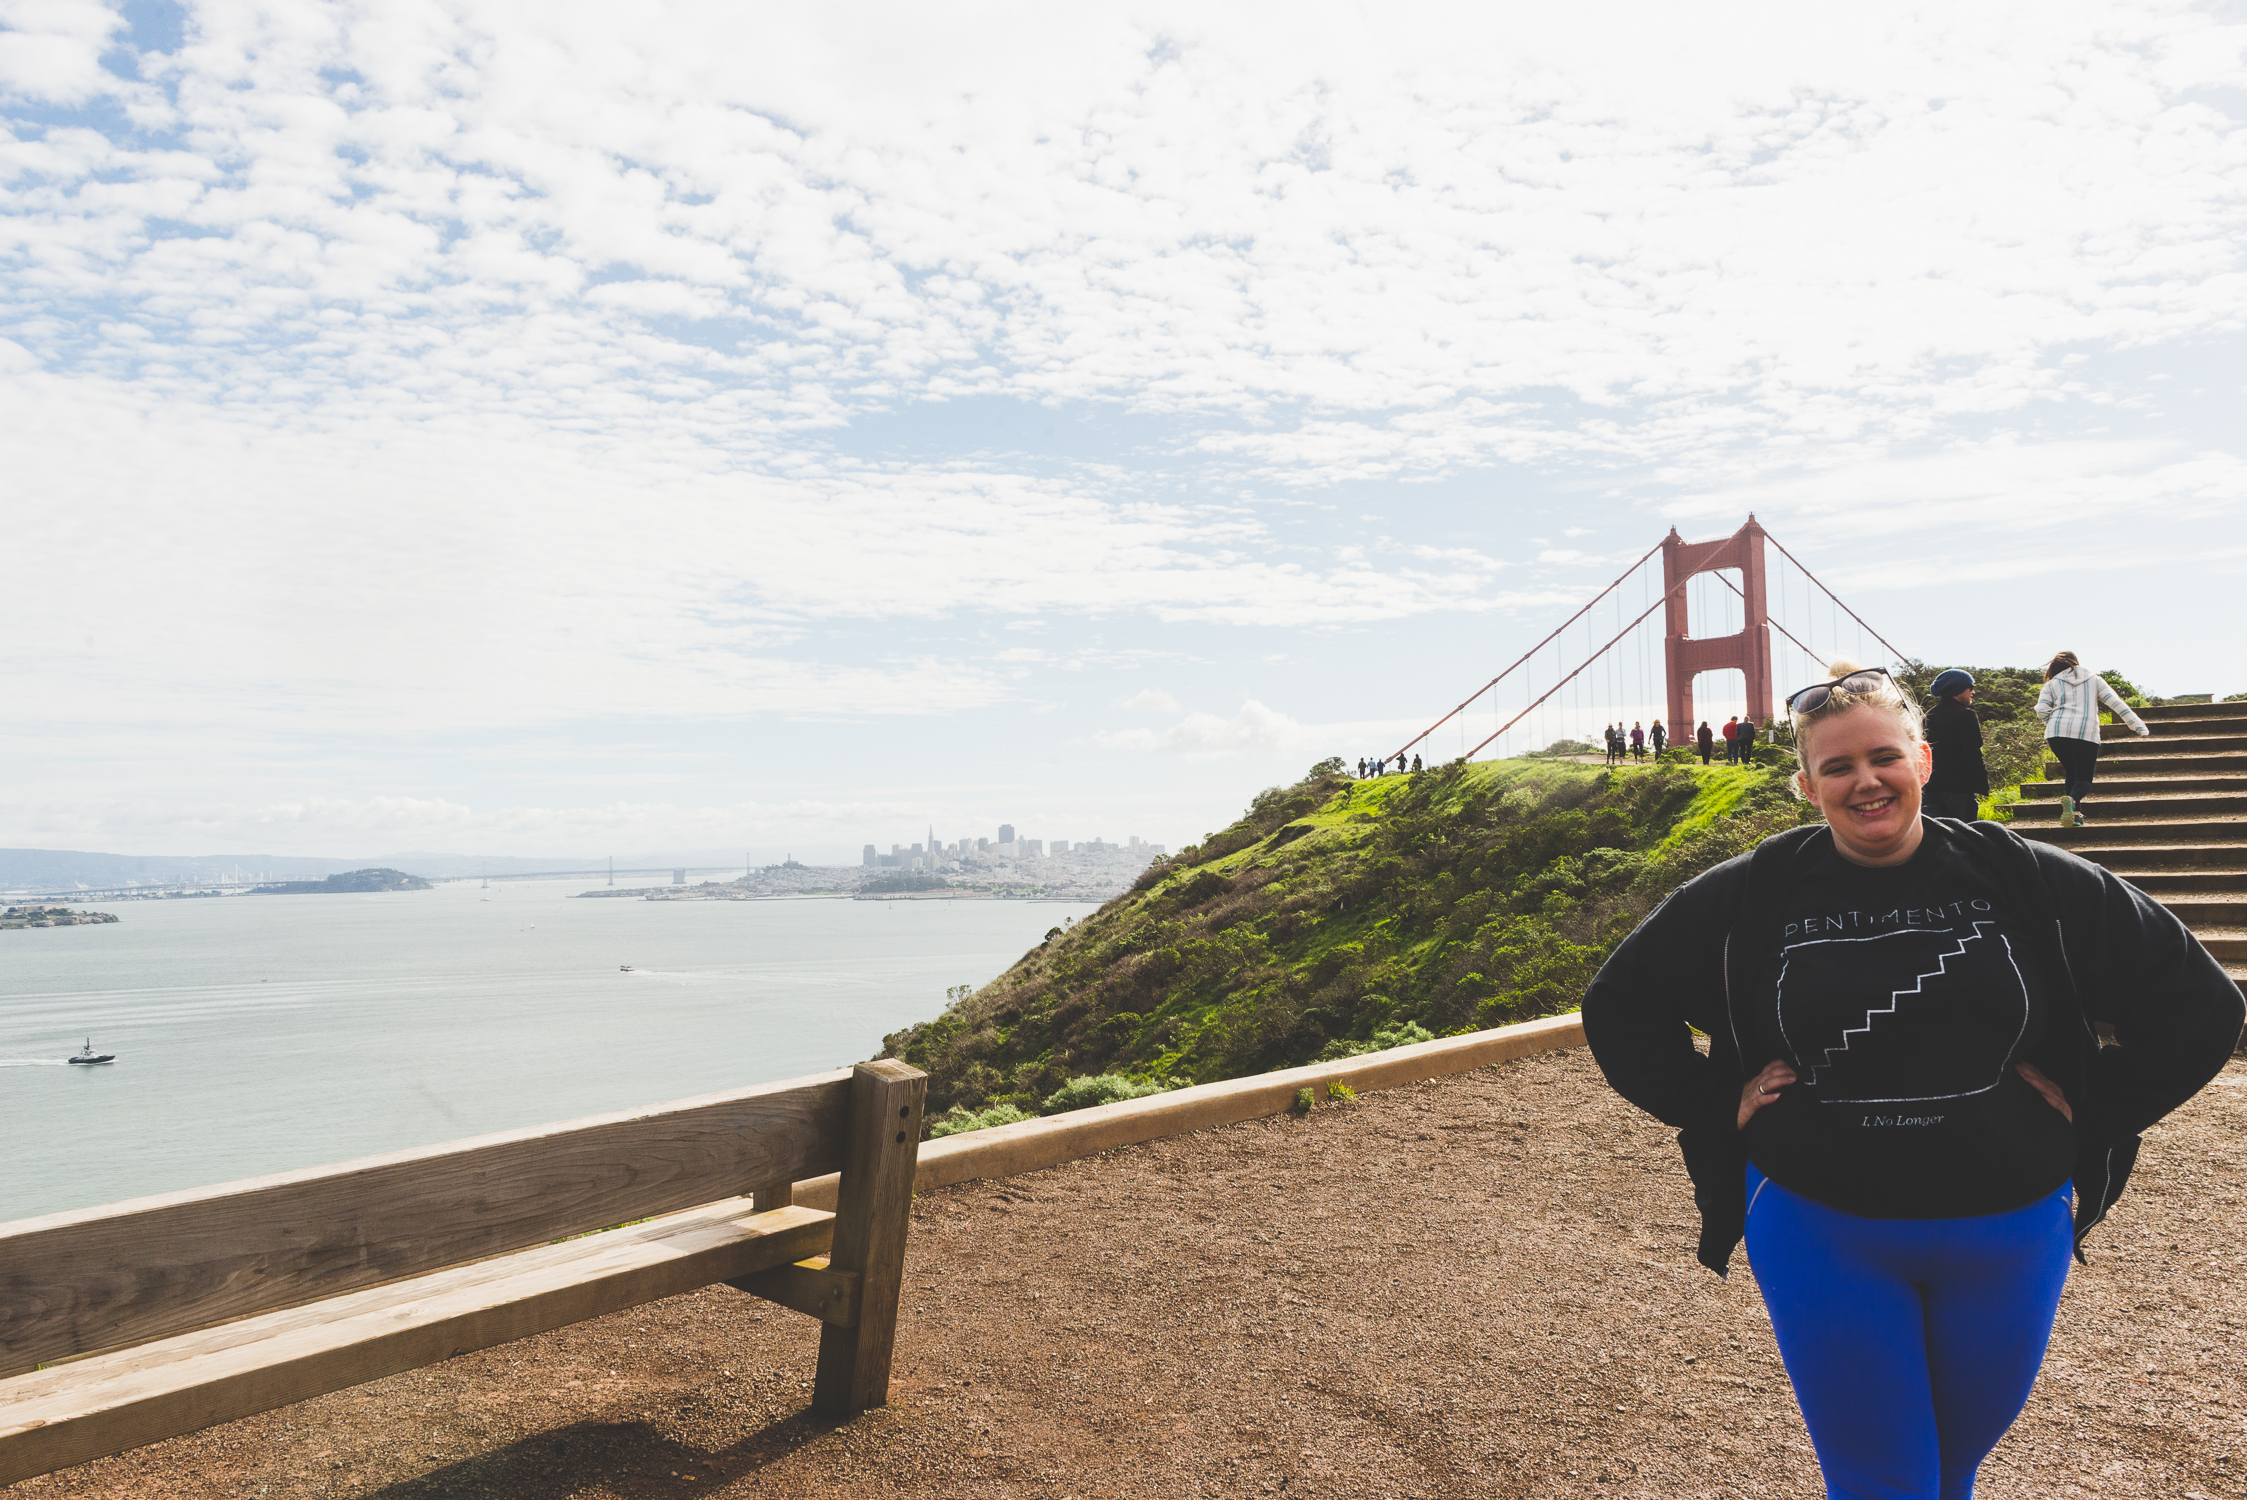 Standing in front of the Golden Gate Bridge. / 1/30/15 / San Francisco, CA